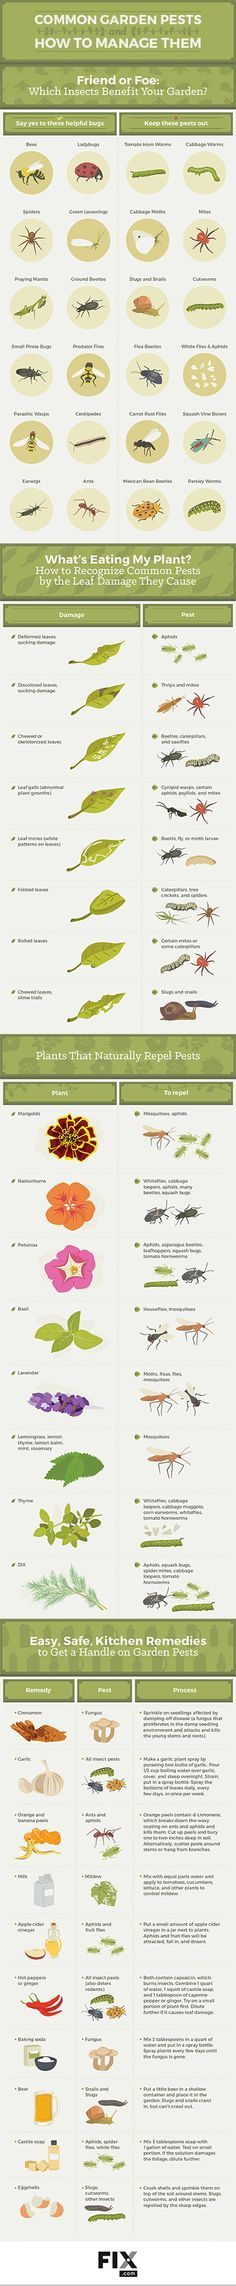 1000 images about garden pest control on pinterest for How to protect your garden from animals